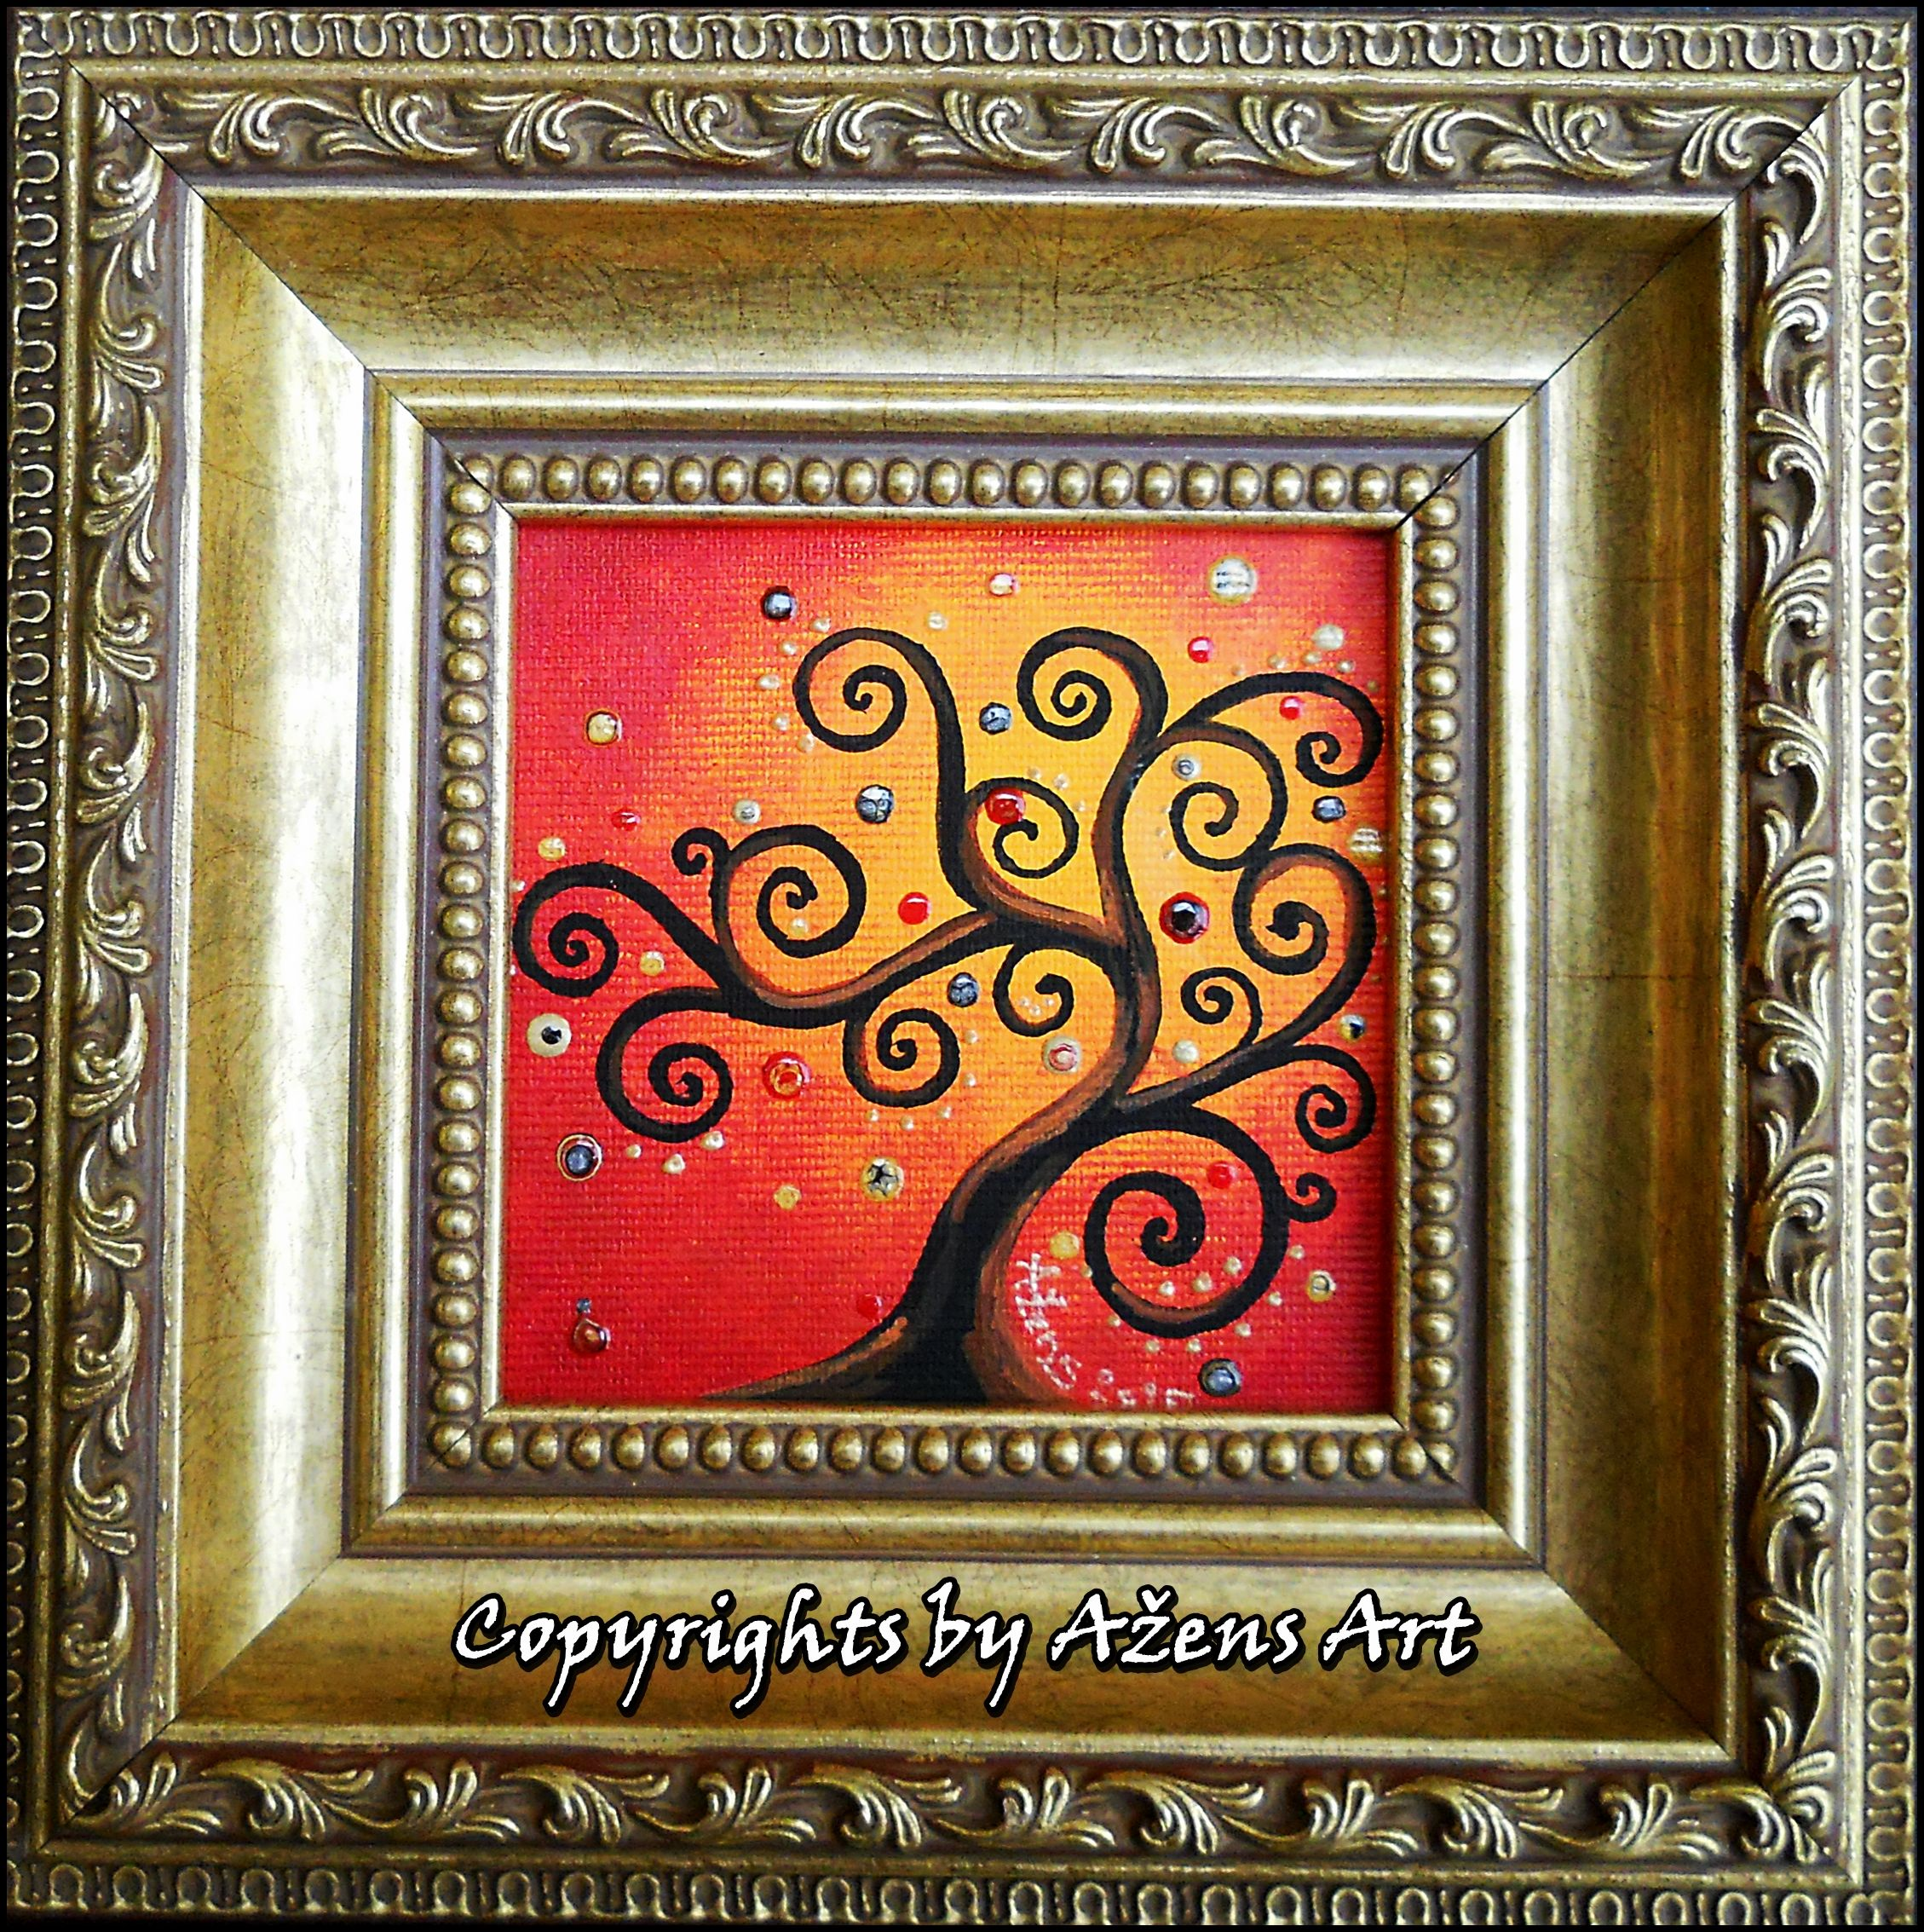 Tree Of Life 13 Mixed Media On Canvas 10 X 10cm Frame 19 5 X 19 5 X 3 7 Cm Mixed Media Canvas Art Frame